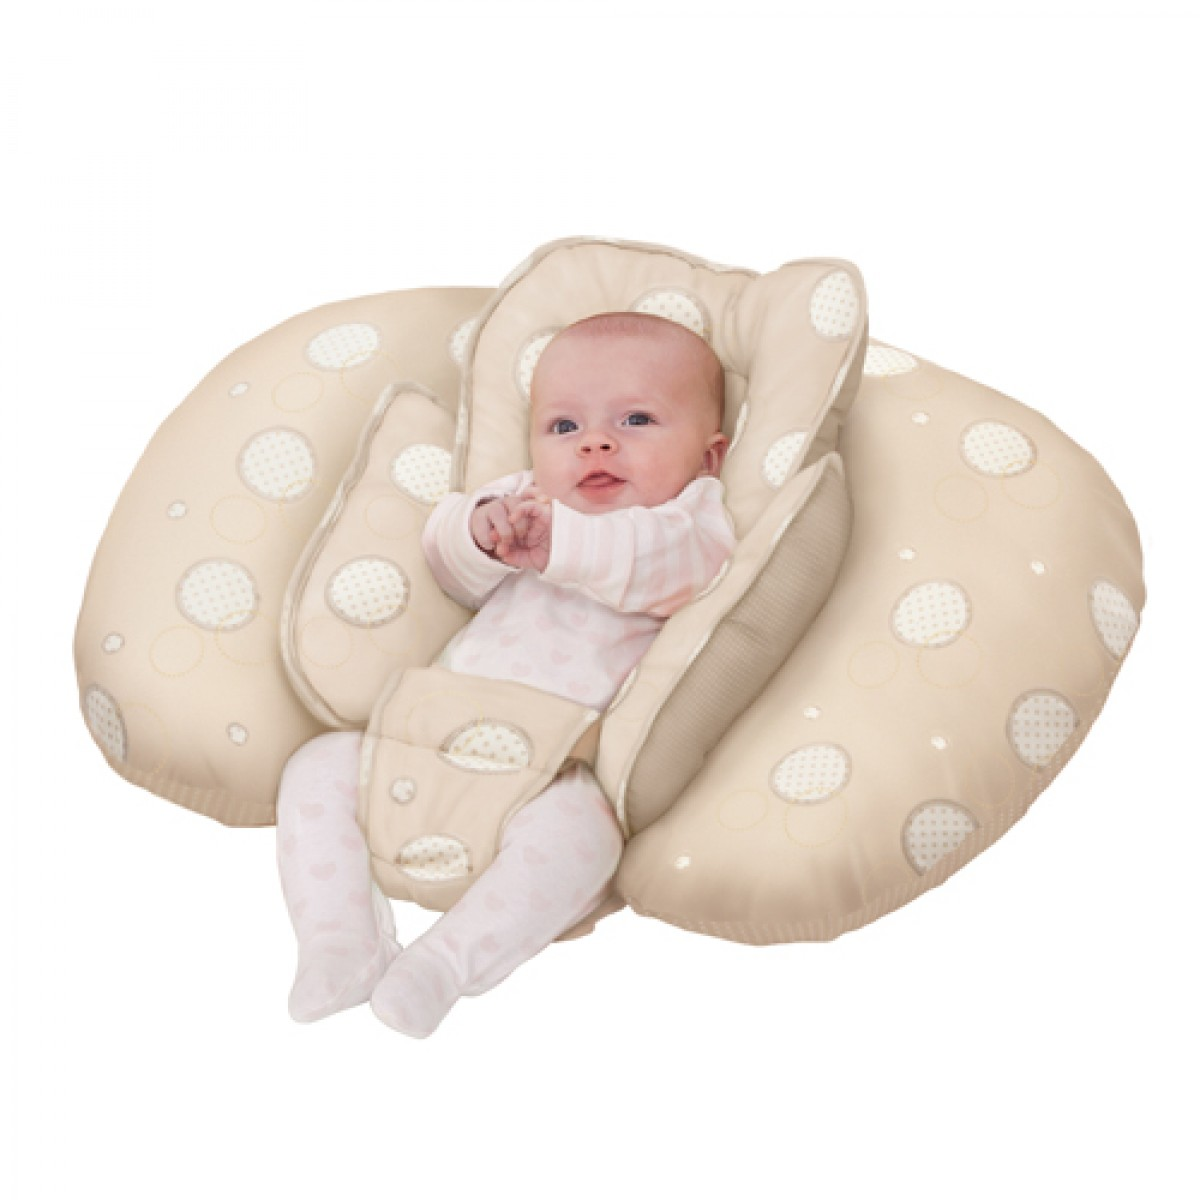 Clevamama Clevacushion 10 In 1 Ultimate Support Pillow